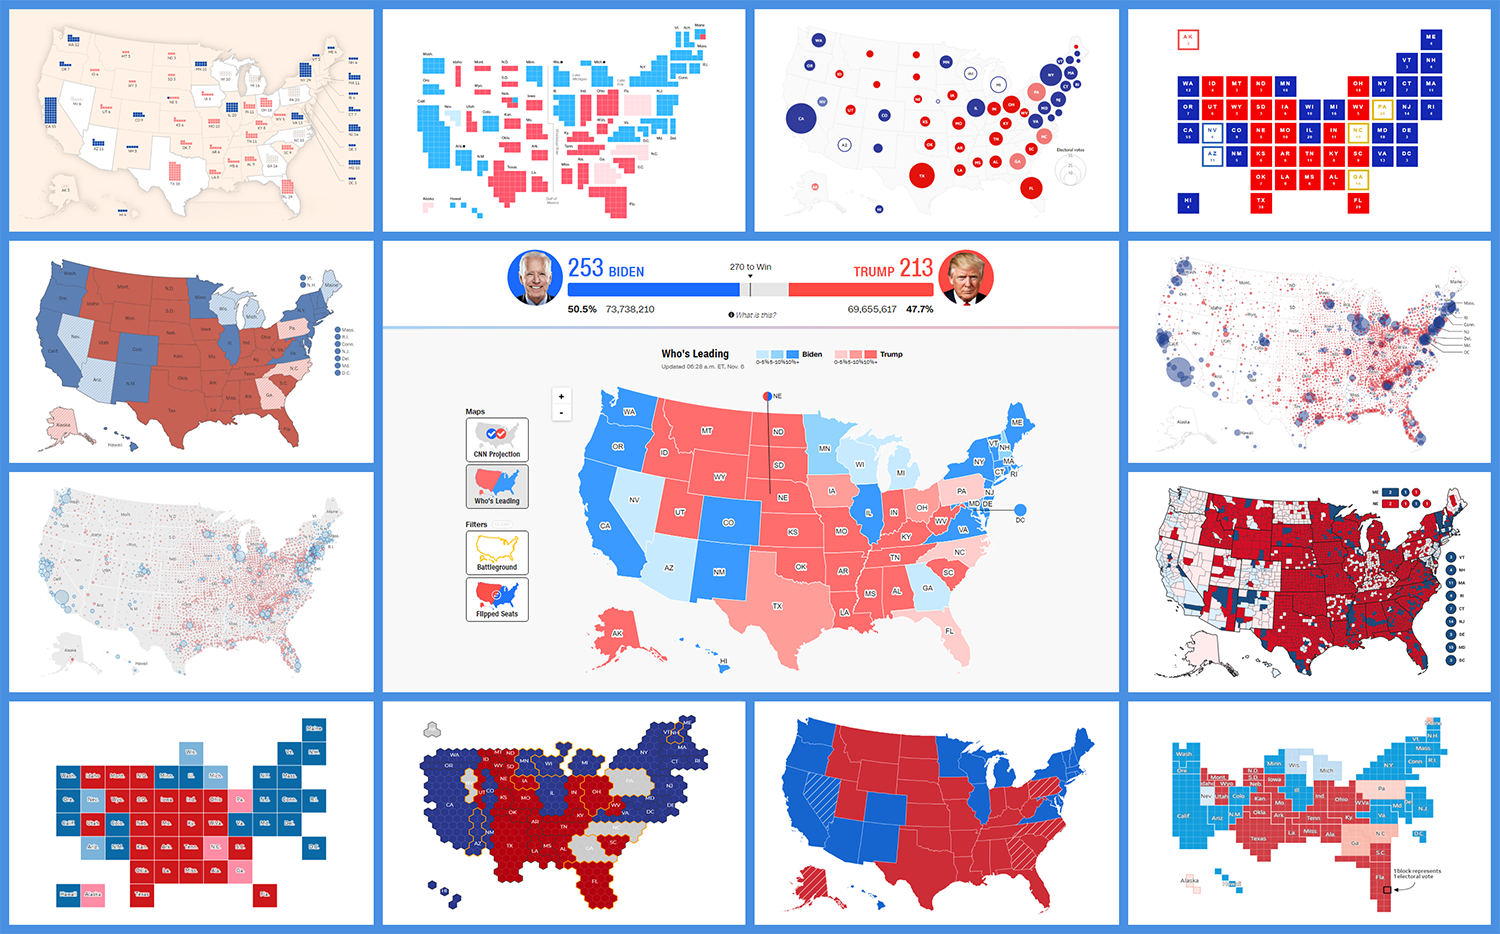 Top 24 Election Maps Visualizing 2020 U.S. Presidential Electoral College Results | DataViz Weekly Special Edition